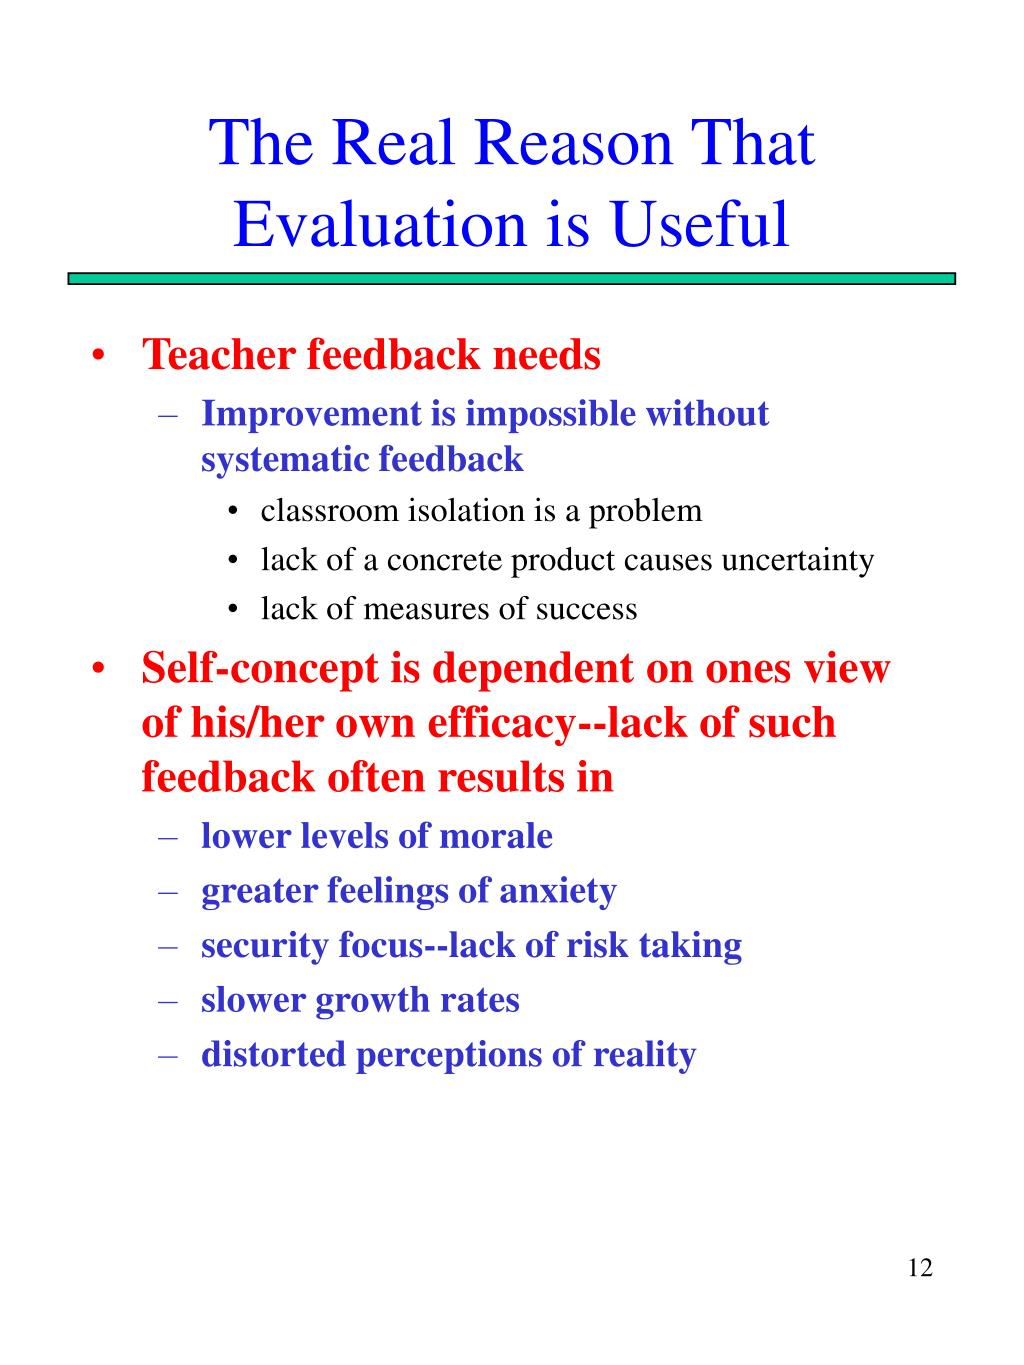 The Real Reason That Evaluation is Useful